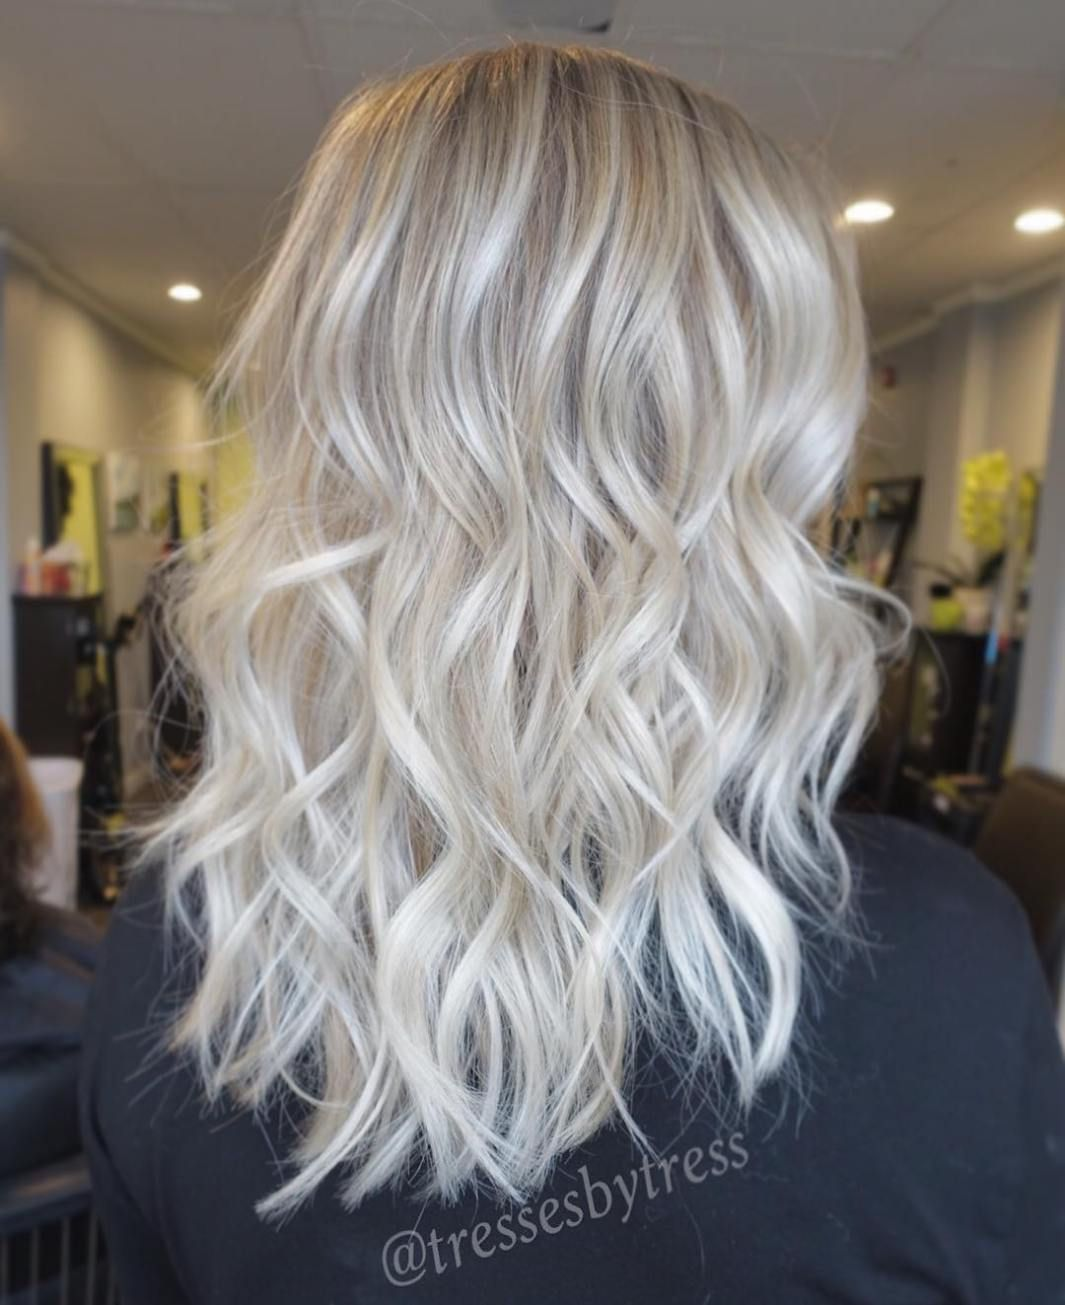 40 Hair Solor Ideas With White And Platinum Blonde Hair Platinum Blonde Hair Color Hair Styles Platinum Blonde Hair